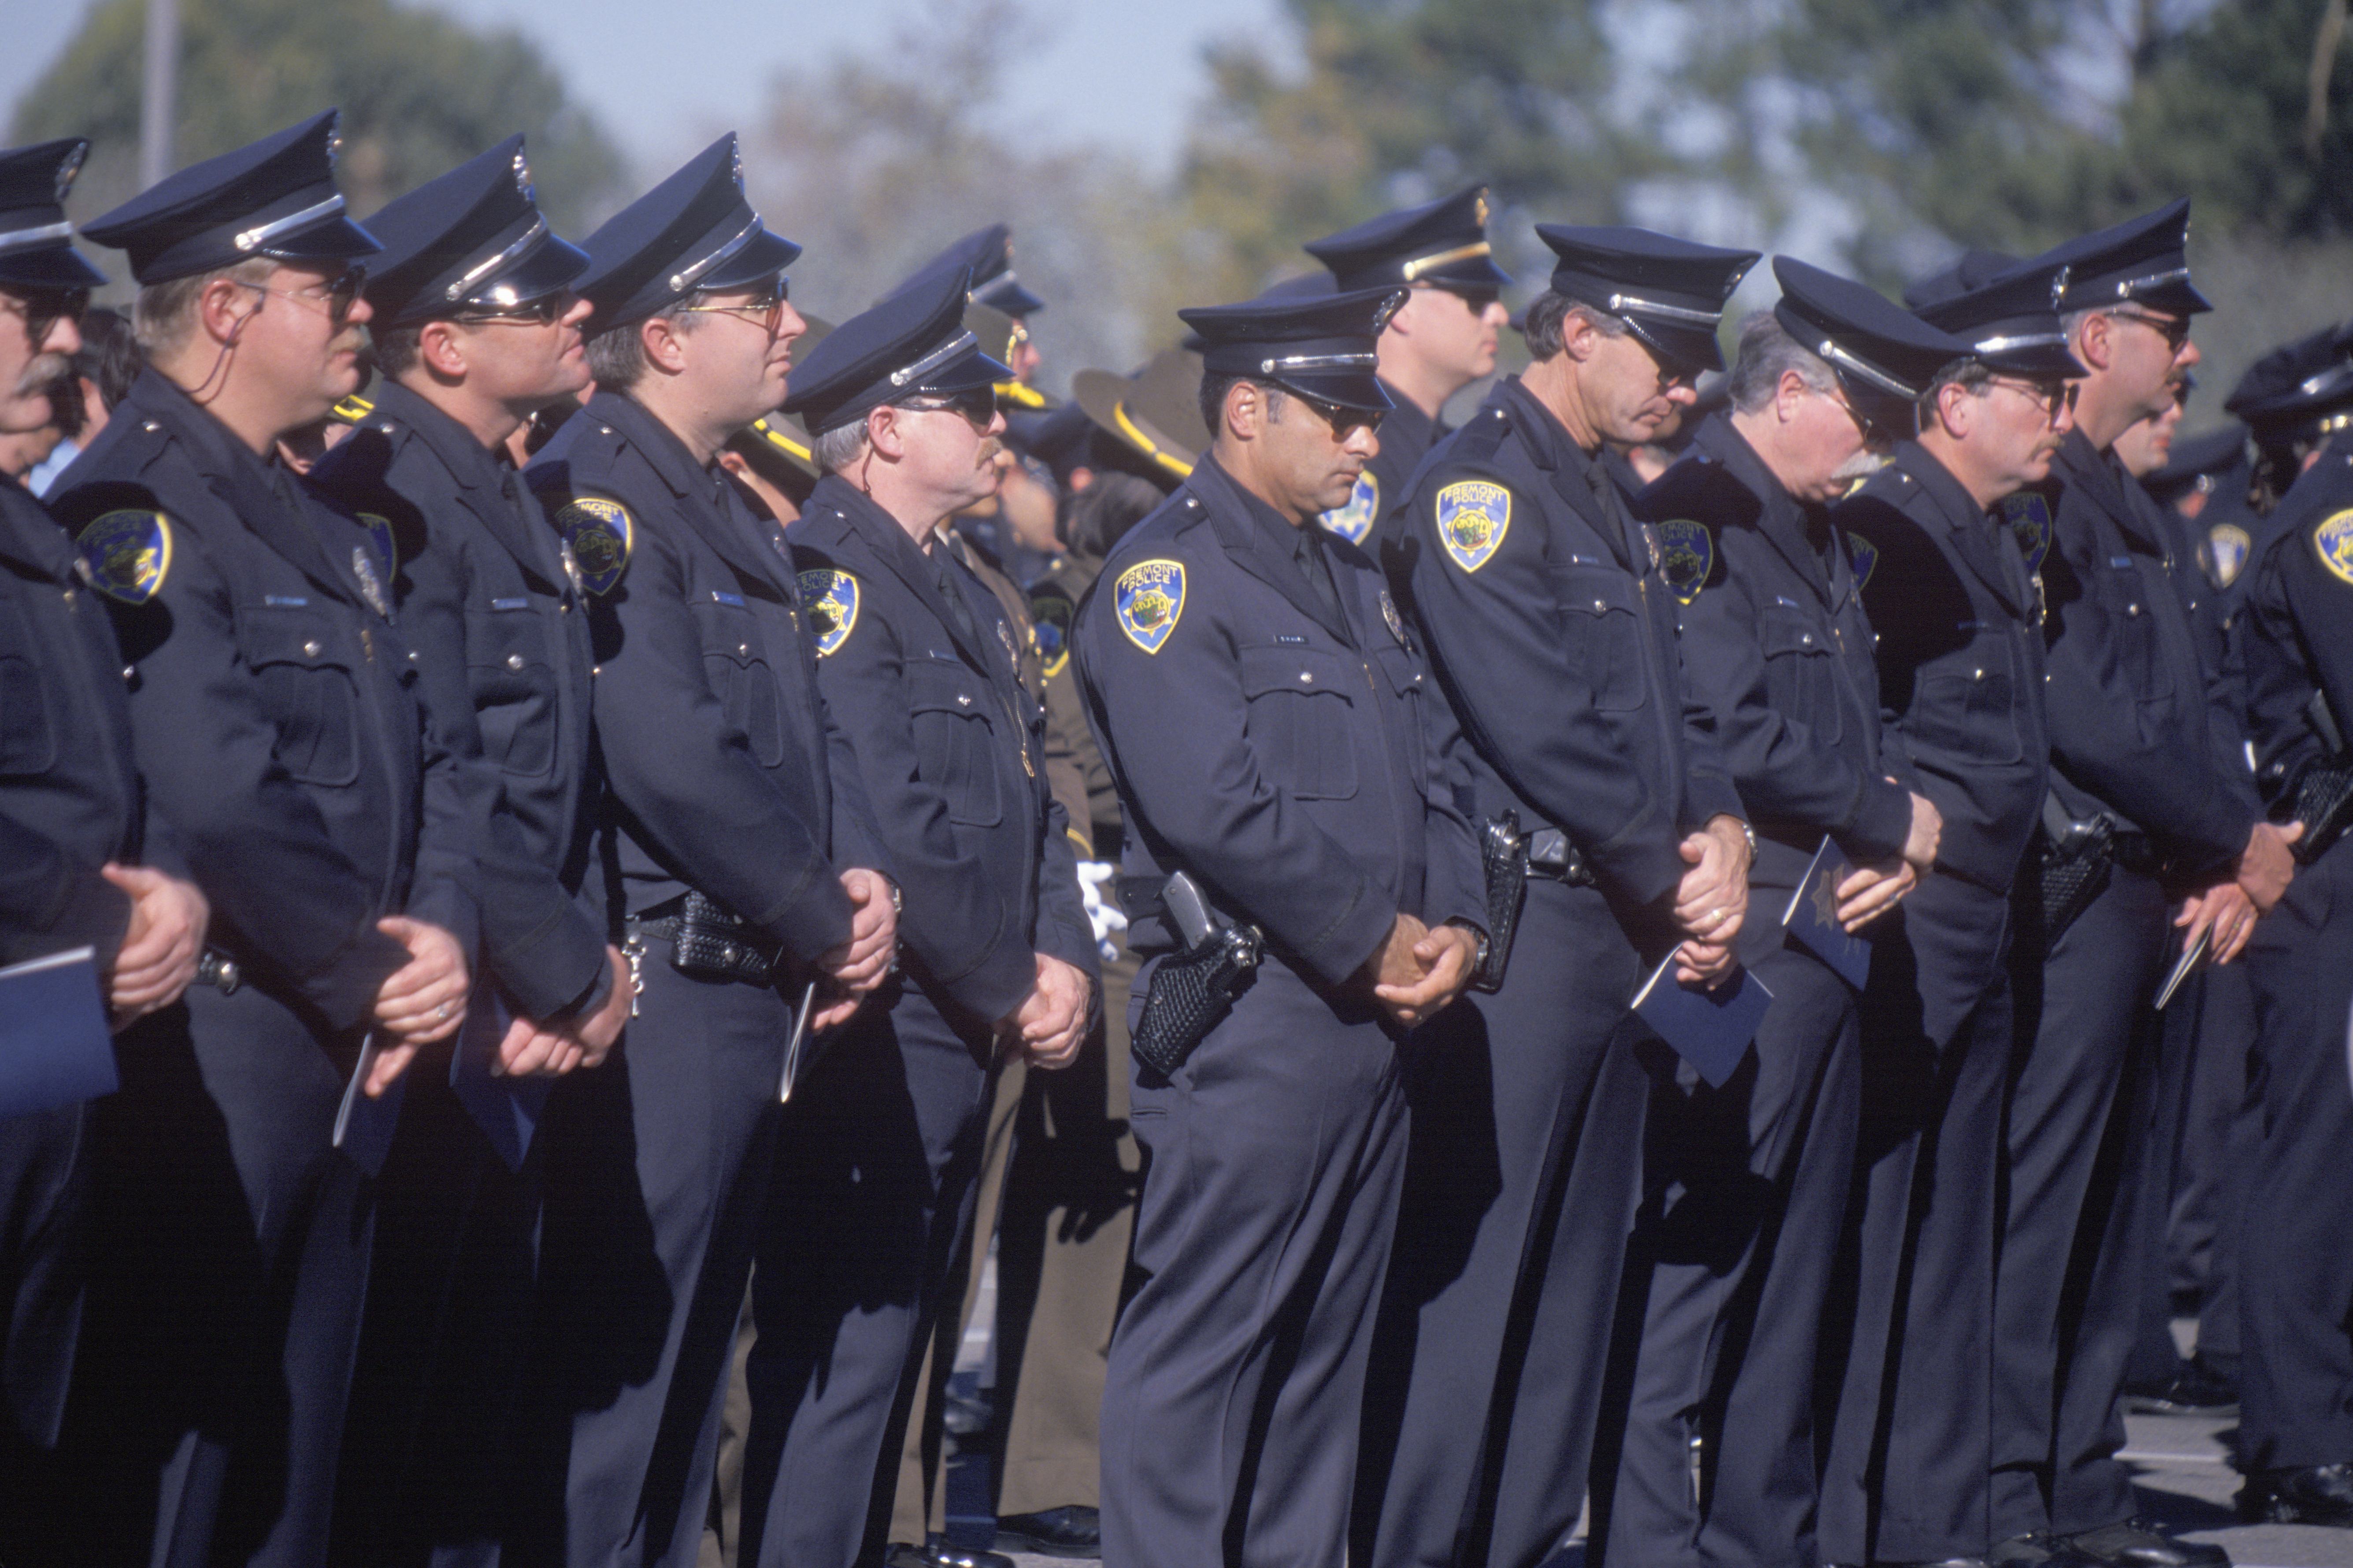 Pictured are police officers. SHUTTERSTOCK/ Joseph Sohm